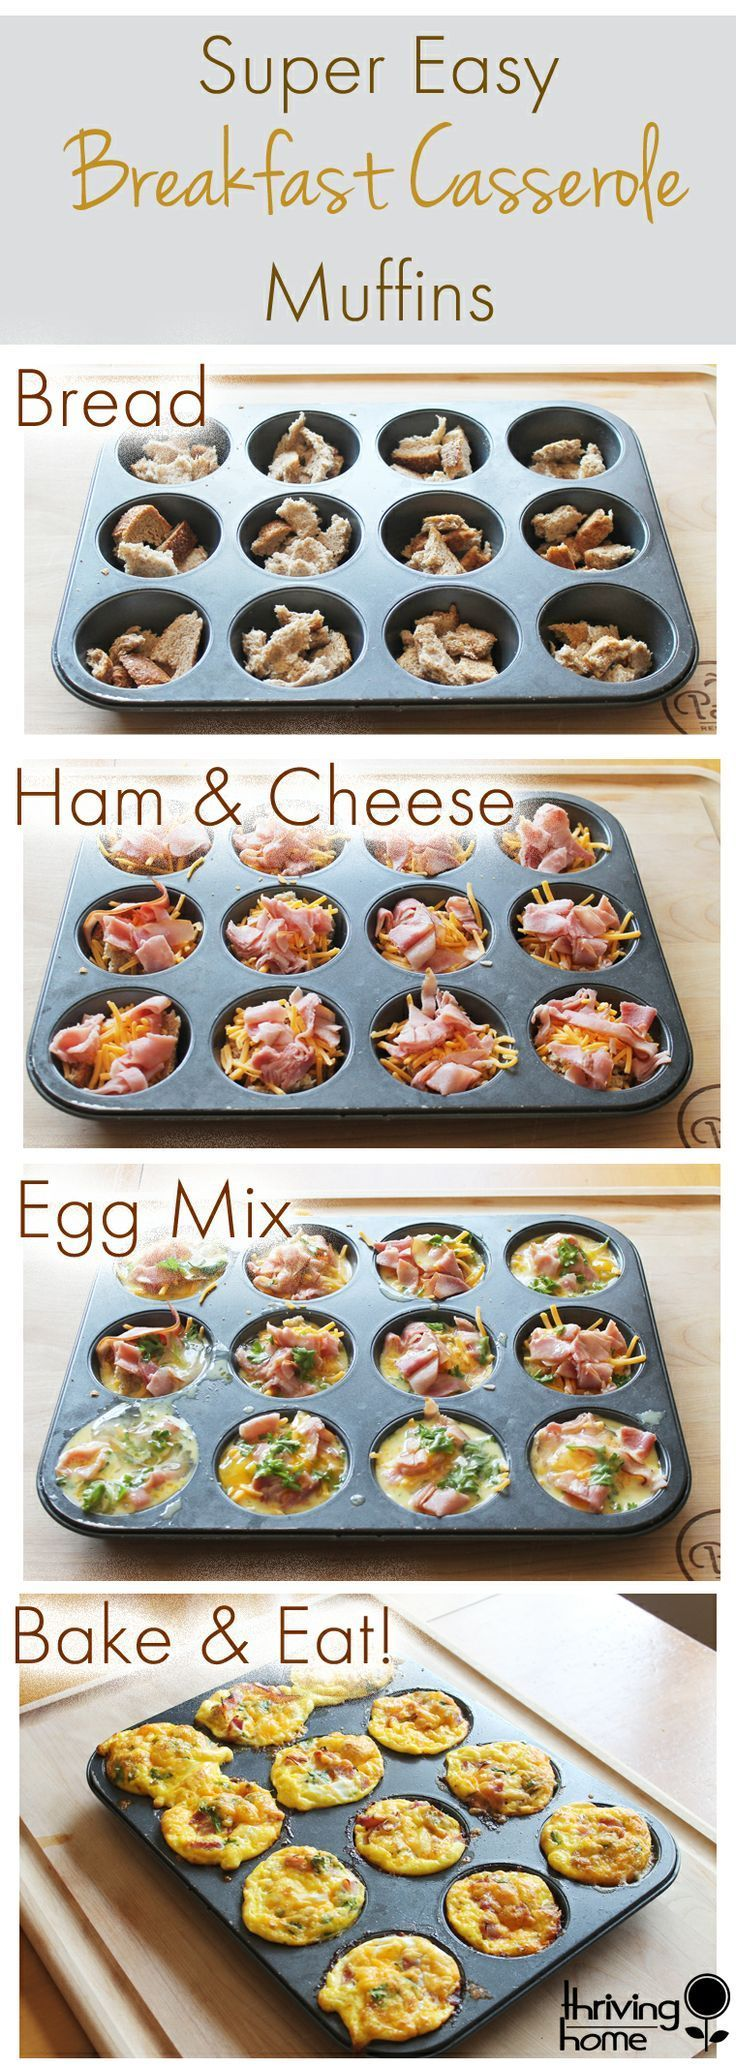 Easy Breakfast Casserole Muffins Recipe. I couldn't believe how simple these are to put together. I love that I almost always have the ingredients on hand too. Great breakfast recipe for kids. (simple dinner recipes 3 ingredients)